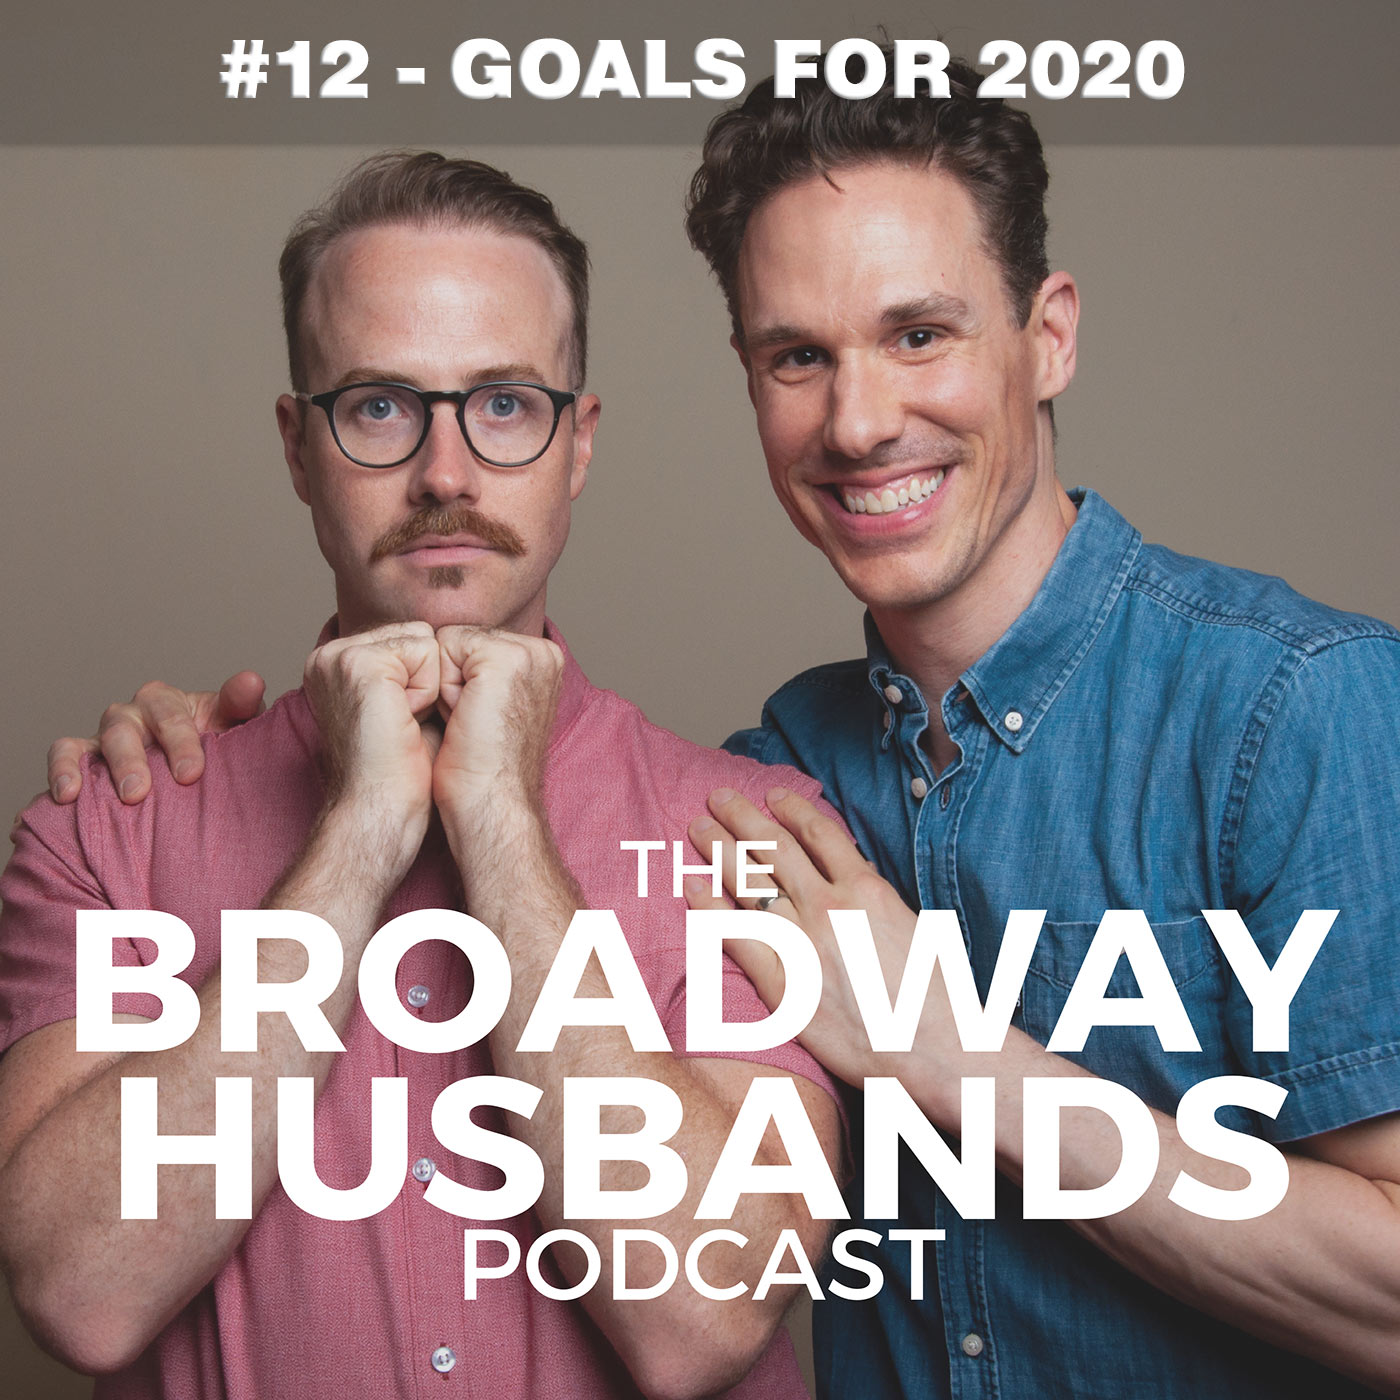 The Broadway Husbands Episode 12 Goals for 2020